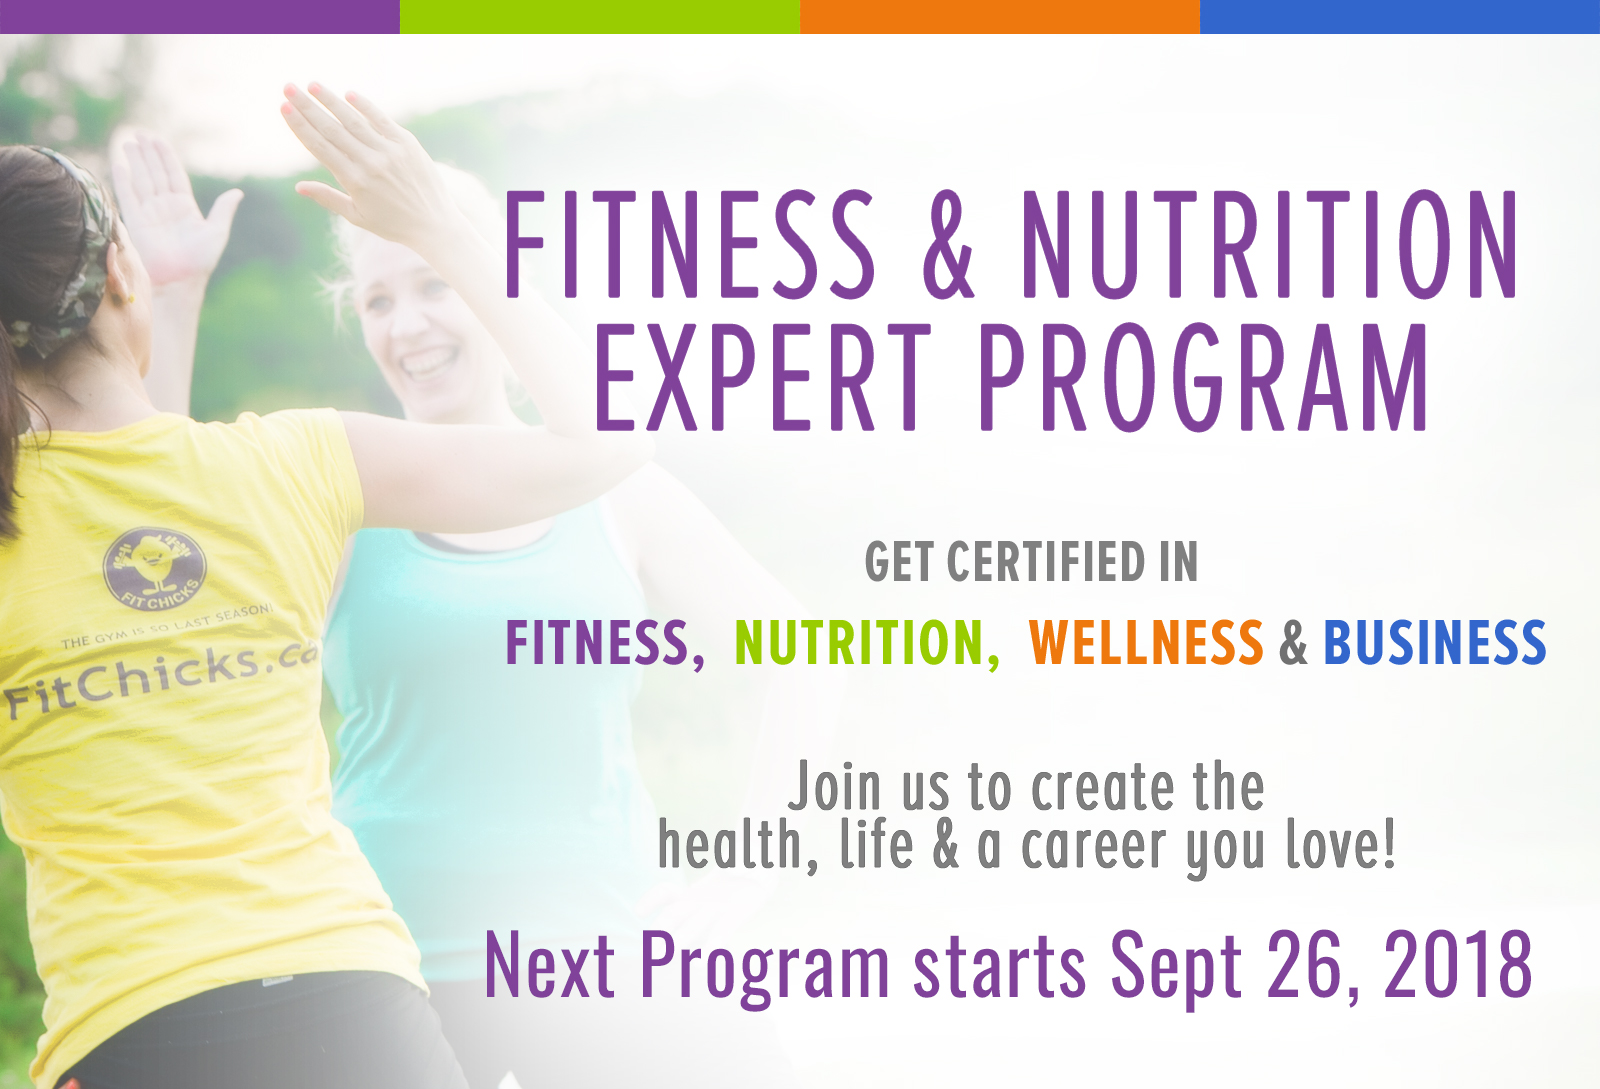 Fitness Nutrition Expert Program Fit Chicks Academy